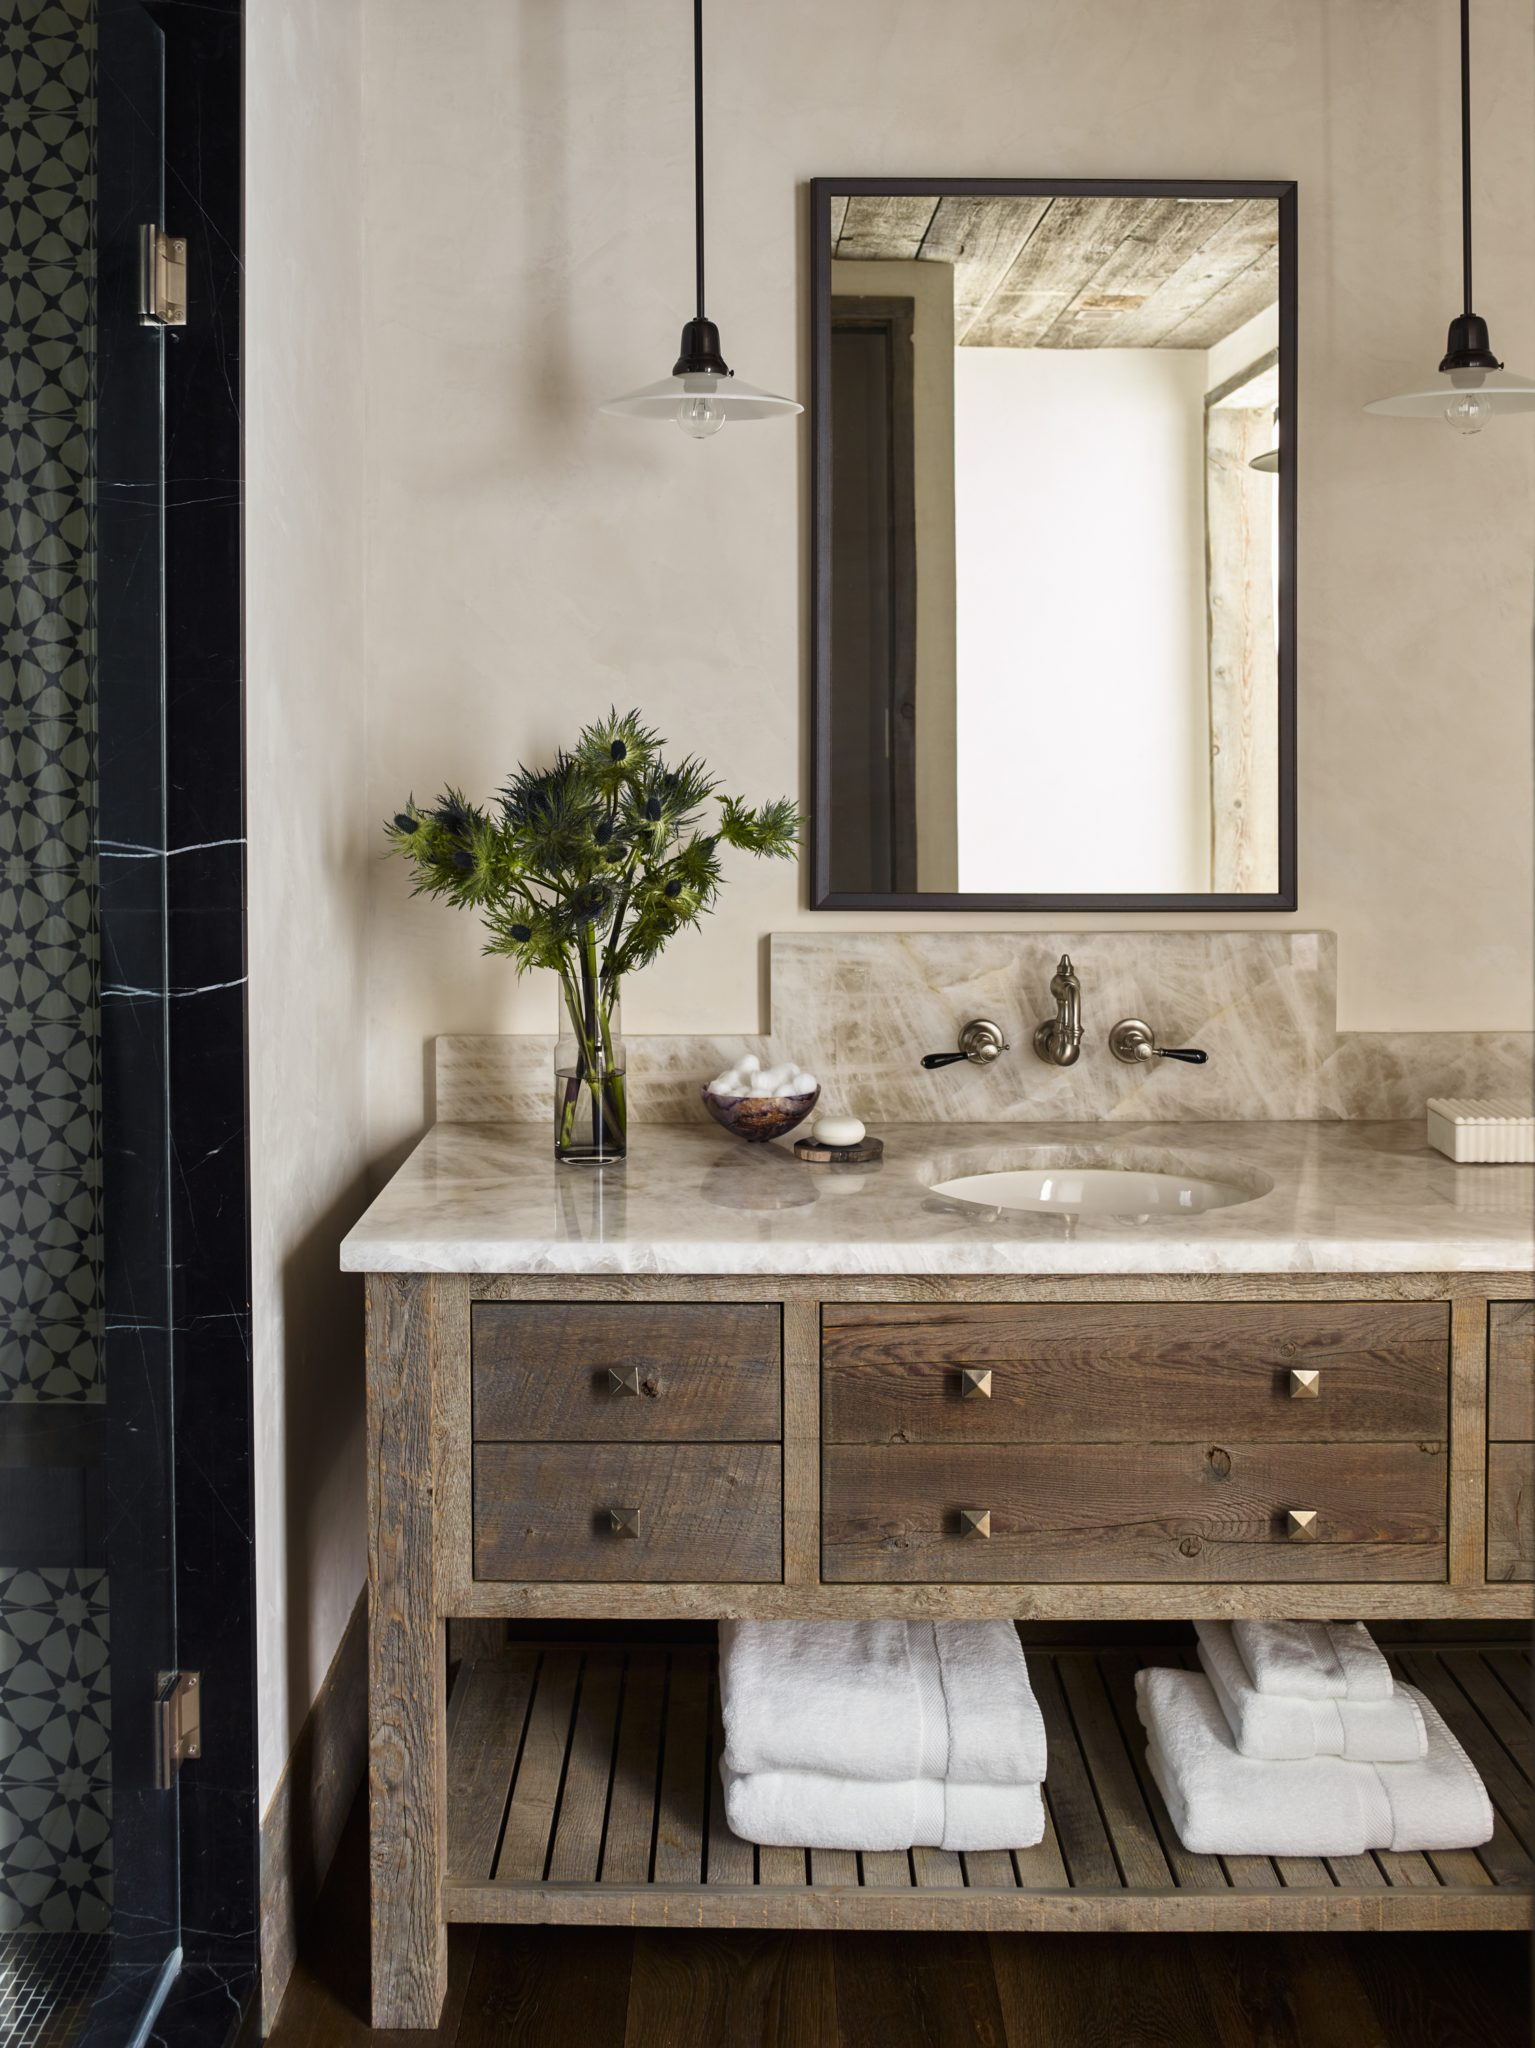 Simple and stylish, the guest bath has a custom vanity by Kylee Shintaffer. The Hudson Pendants from Urban Archaeology, metal-framed mirror, and chic countertop update the space.